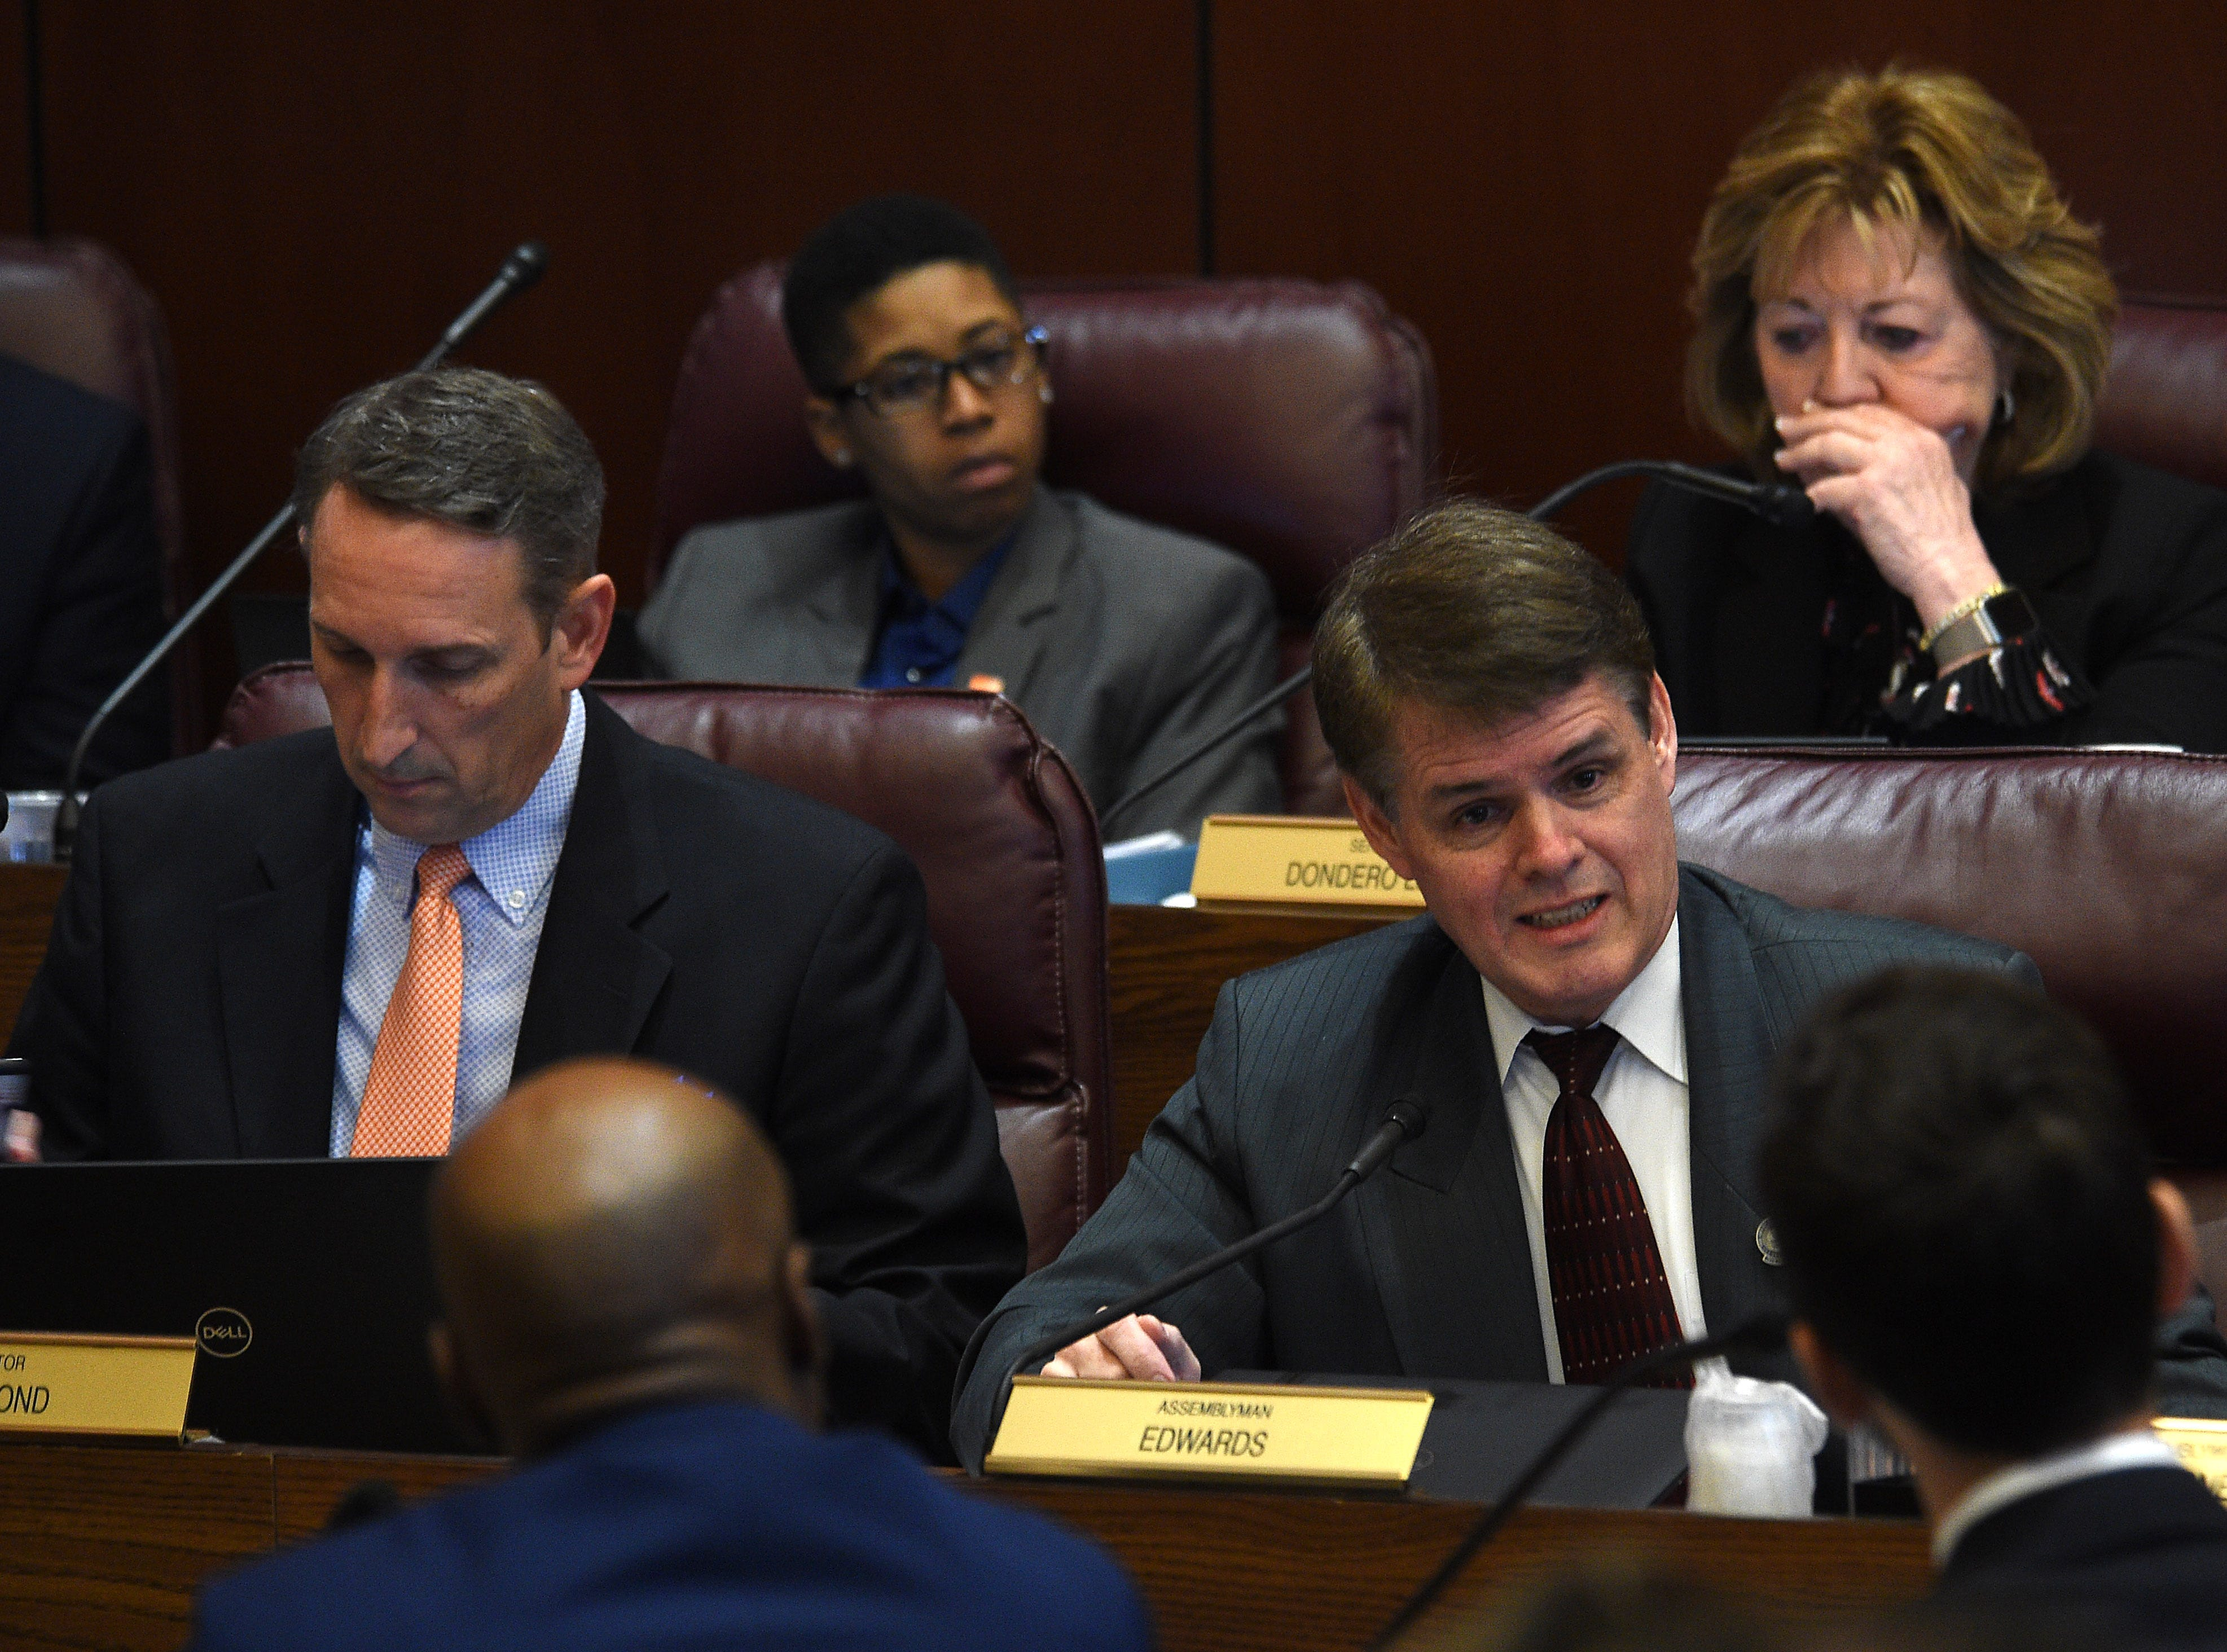 Assemblyman Chris Edwards (Rep.- District 19) asks a question to State Senate Majority Leader Kelvin Atkinson and William Rosen with Everytown for Gun Safety during a hearing for Senate Bill 143 at the Nevada Legislature Building in Carson City on Feb. 12, 2019.